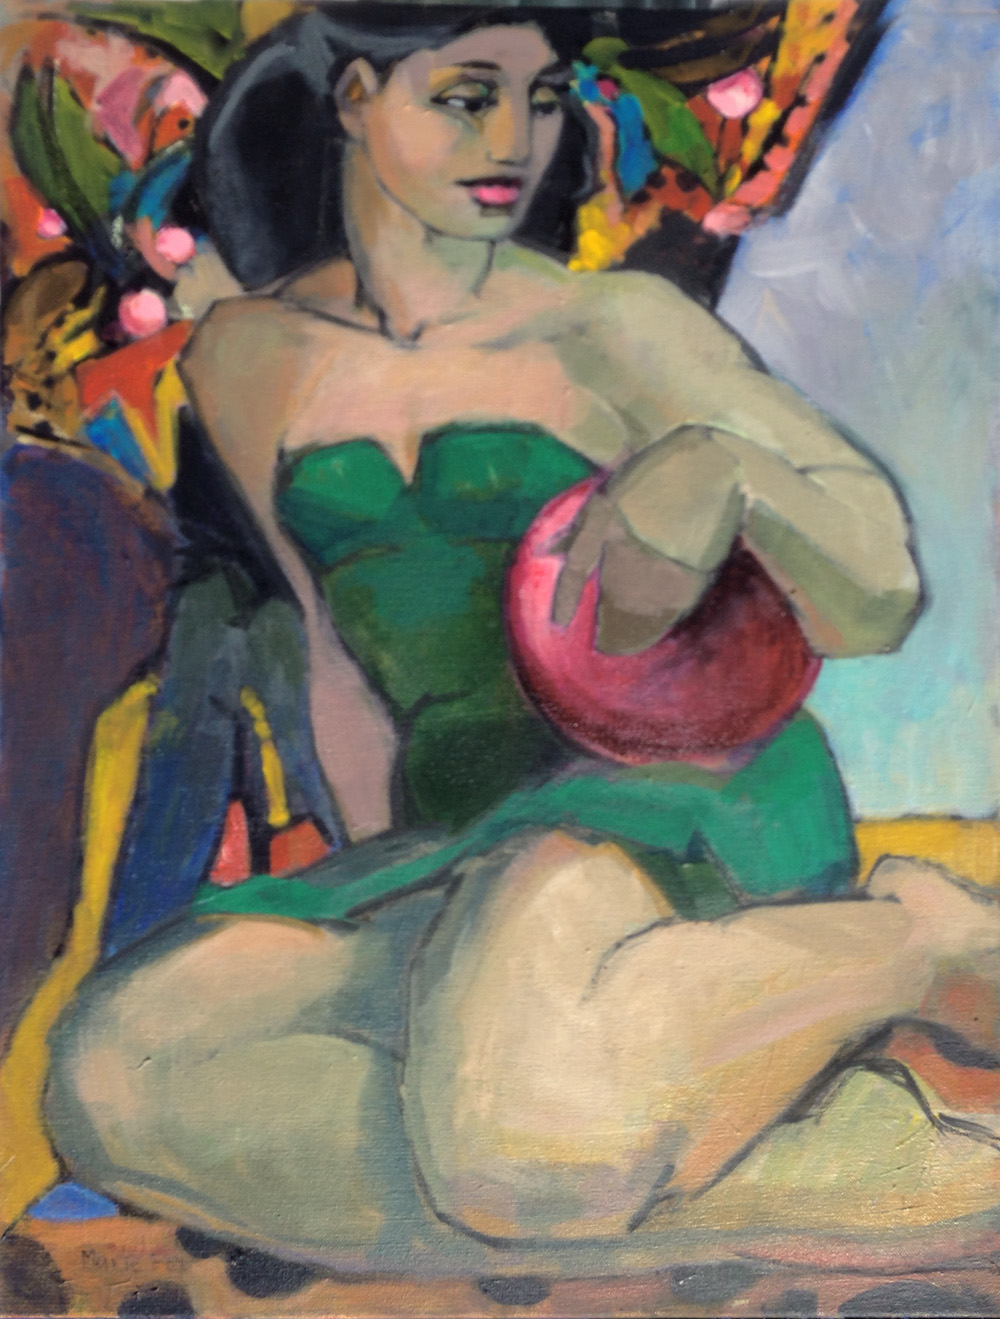 The Red Ball Figurative Painting Of Woman At Beach Ocean Original Acrylic On Stretched Canvas 24 X 18 Edges 75 Inch And Painted Black For